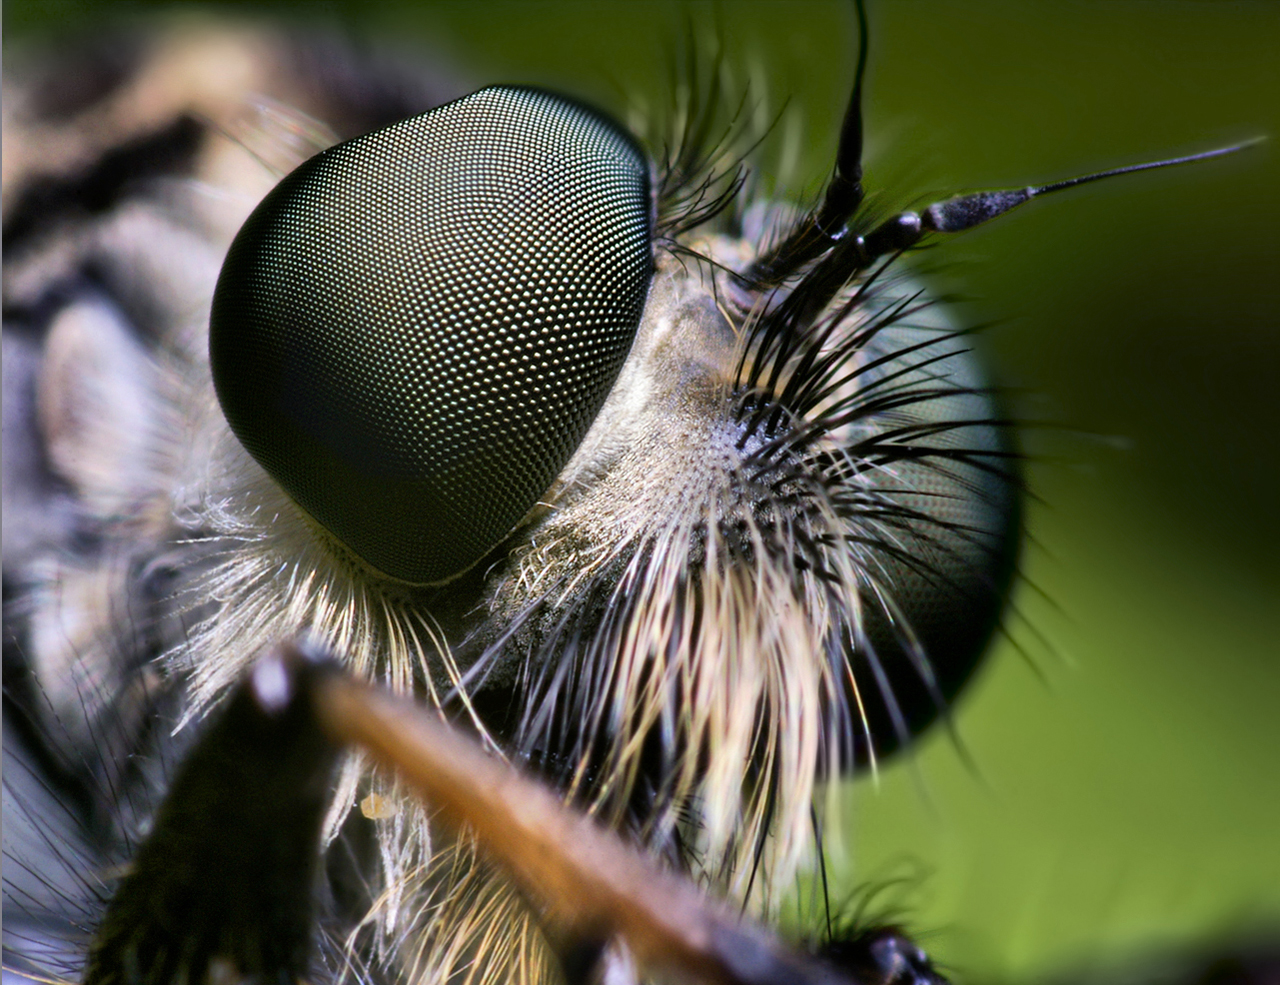 insect_008